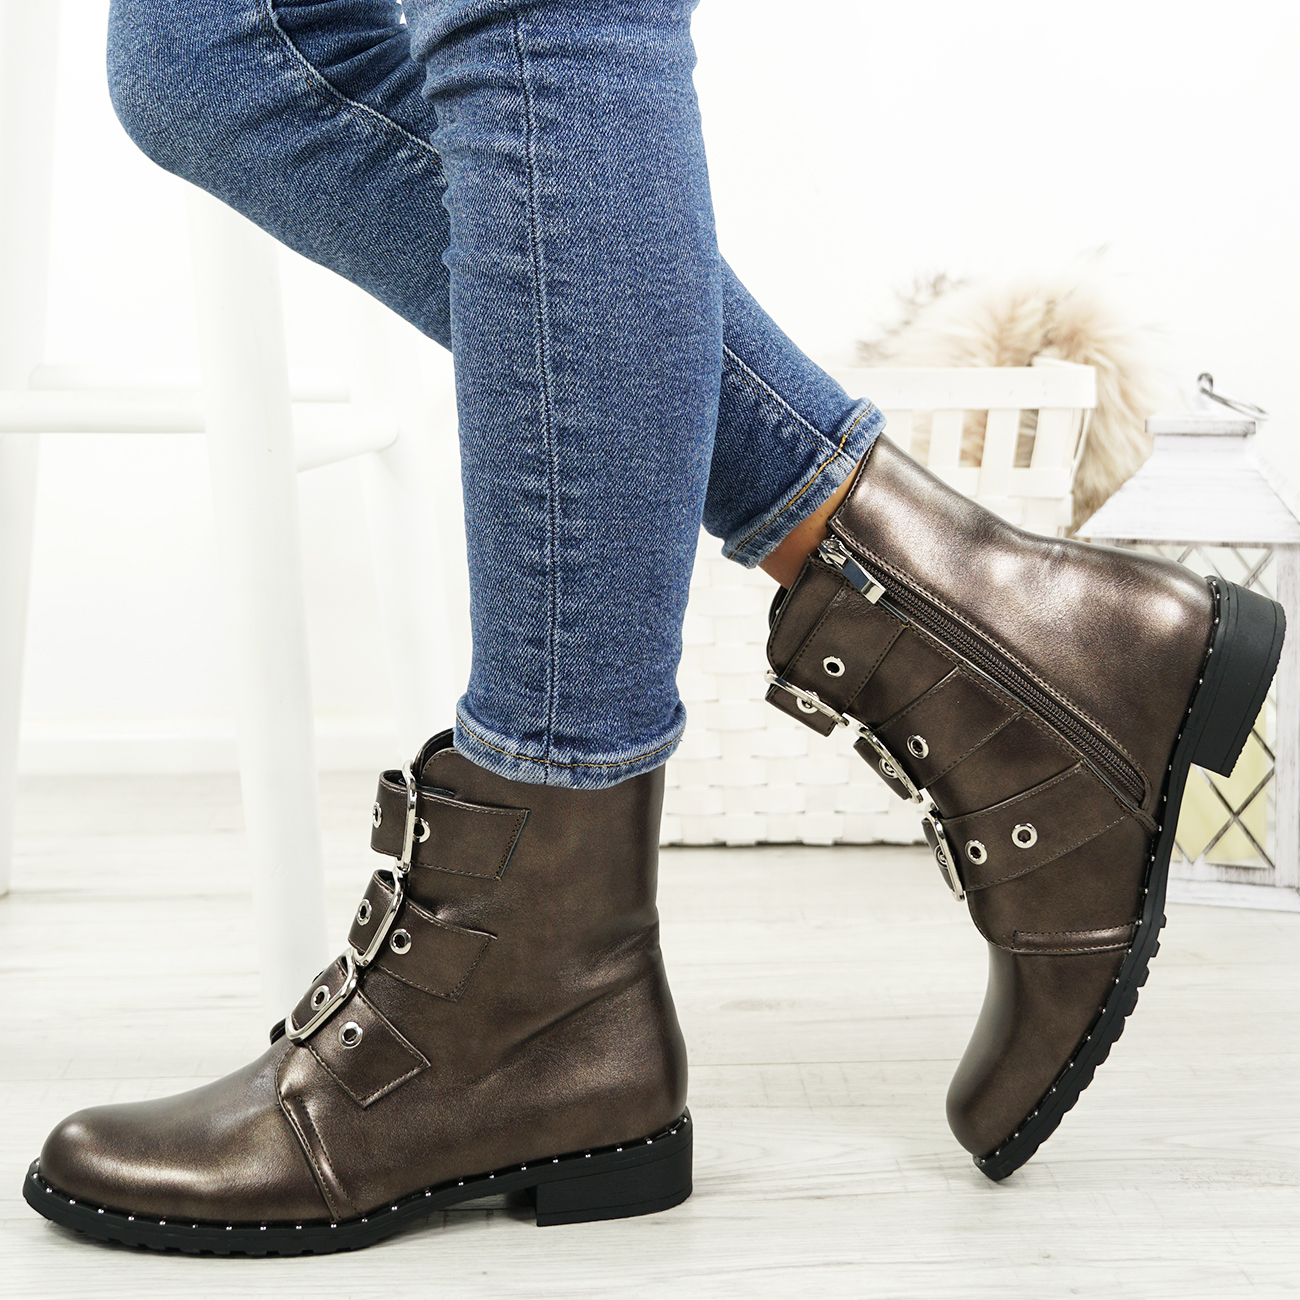 LADIES-WOMENS-BIKER-ANKLE-BOOTS-ZIP-STUDDED-LOW-HEEL-COMFY-SHOES-SIZES thumbnail 17